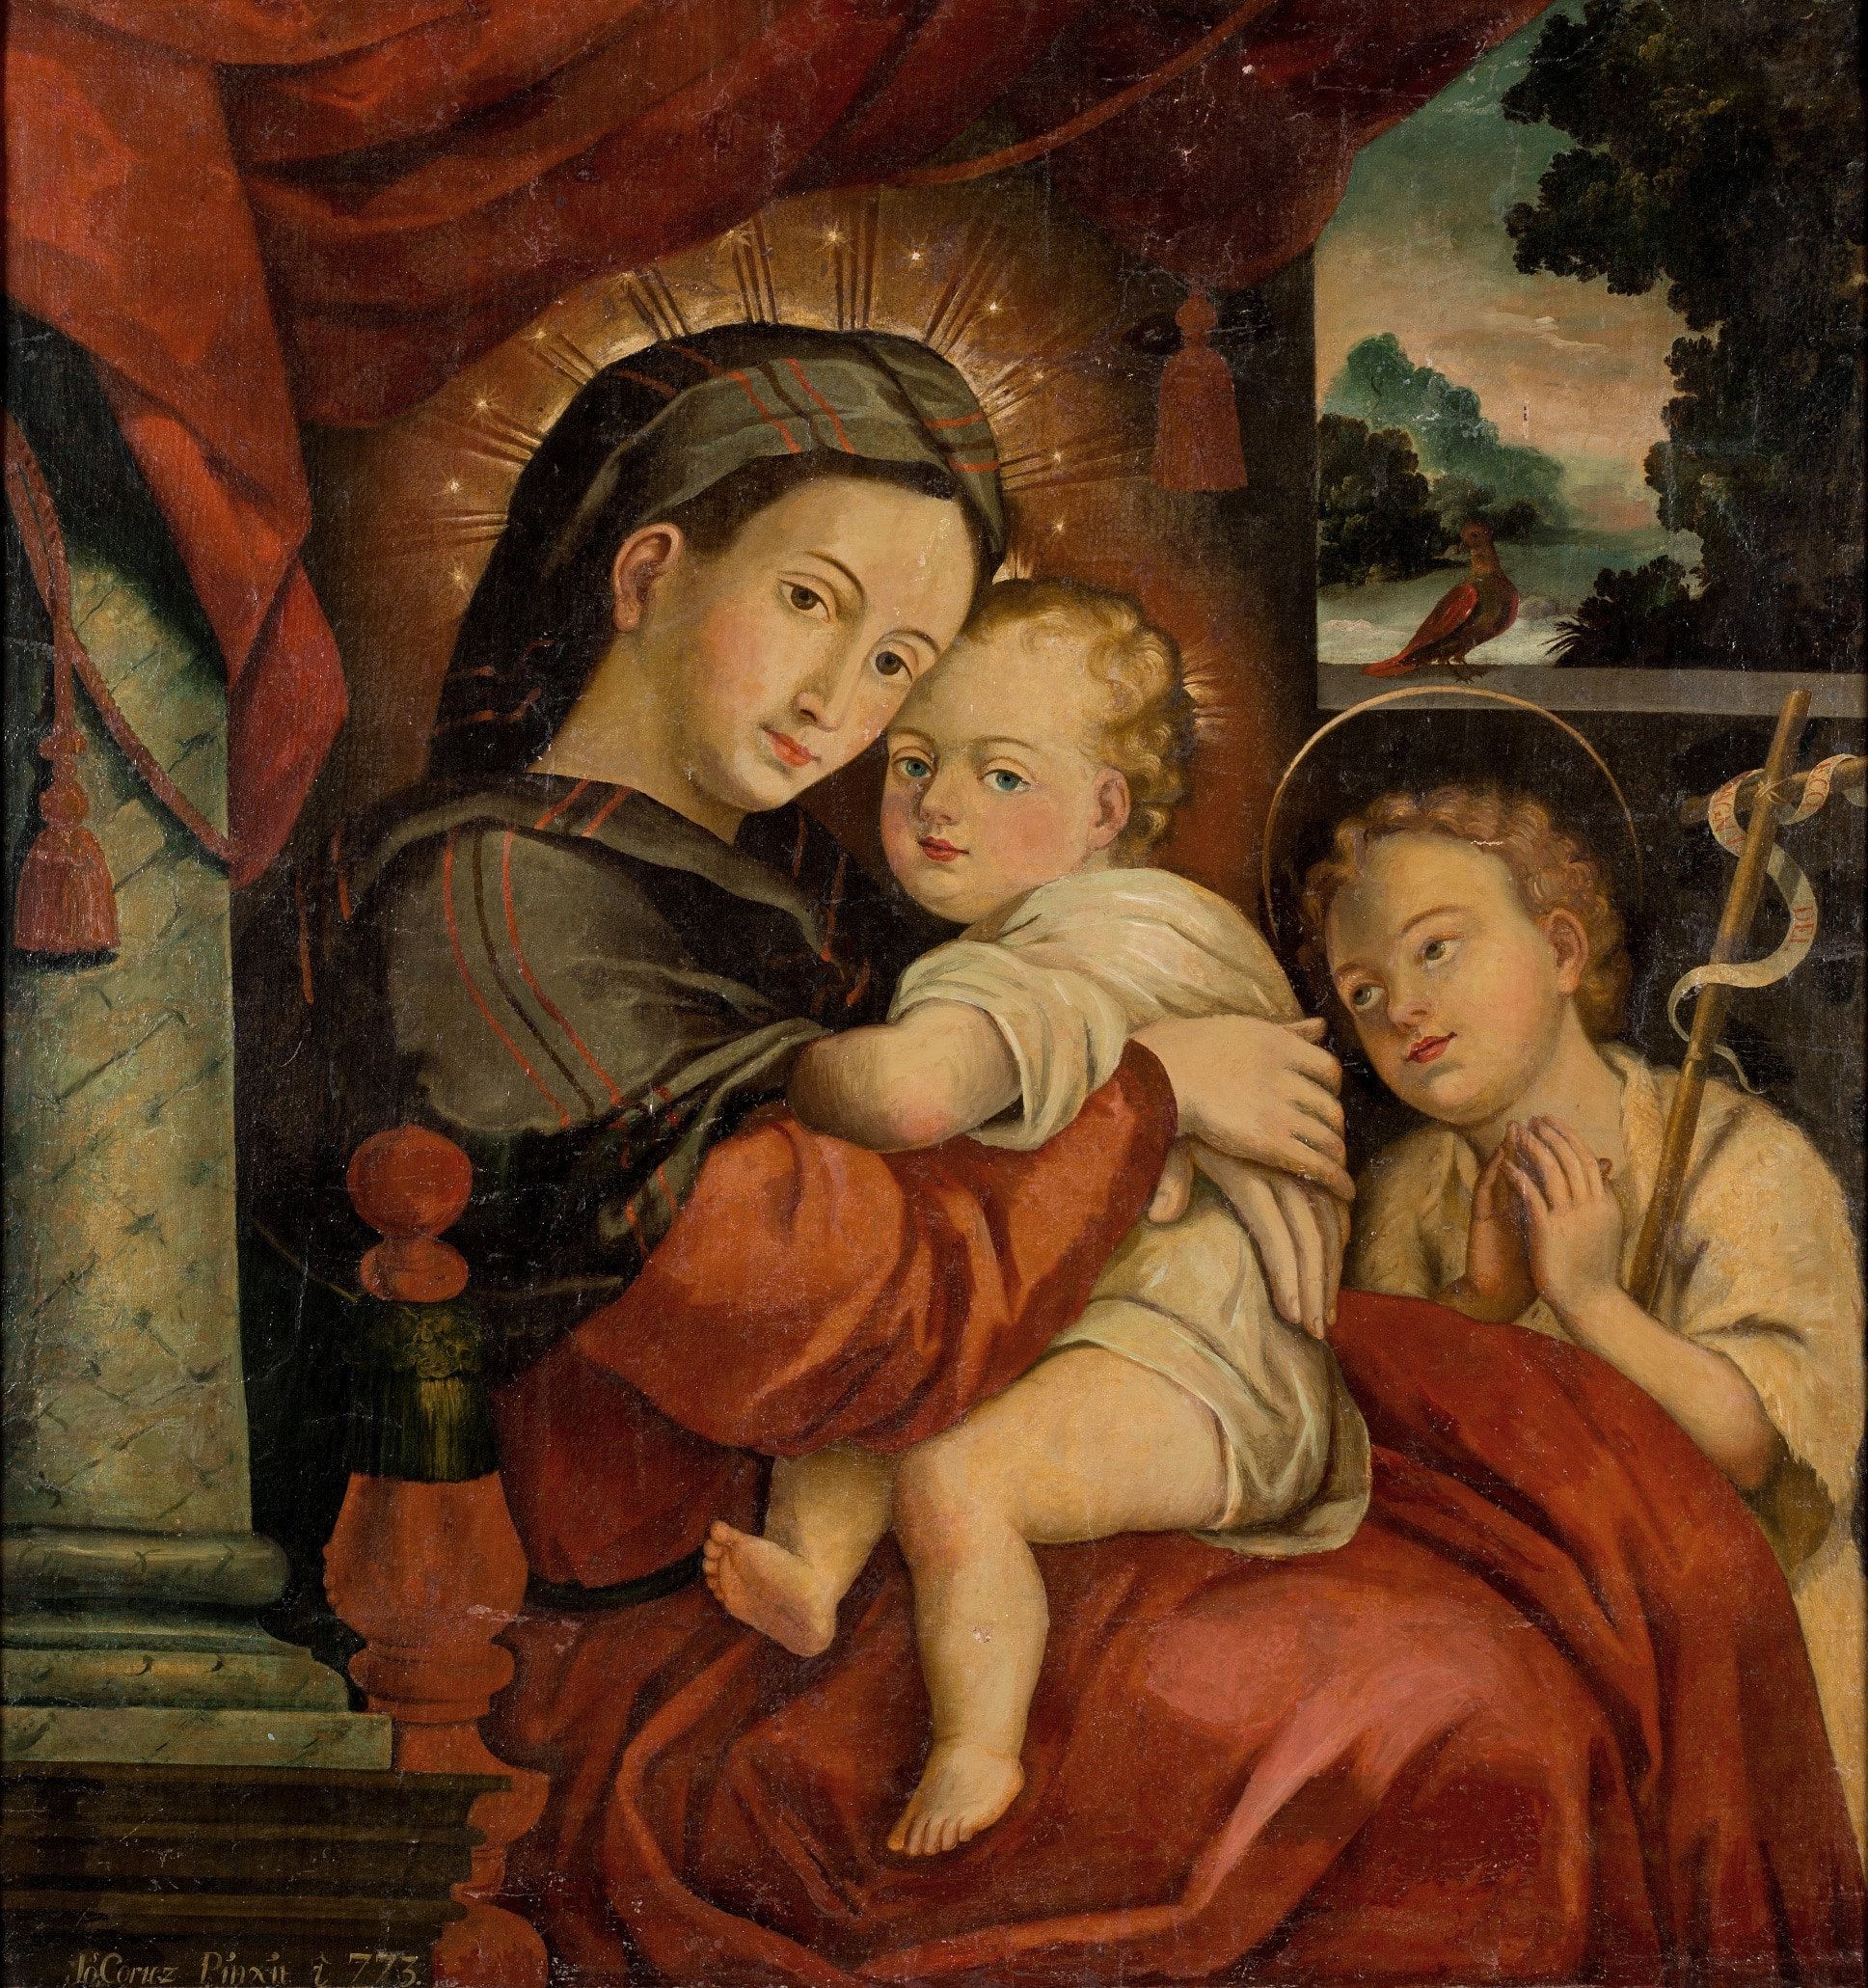 The Virgin and Child with the Infant Saint John - José Cortés de Alcozer